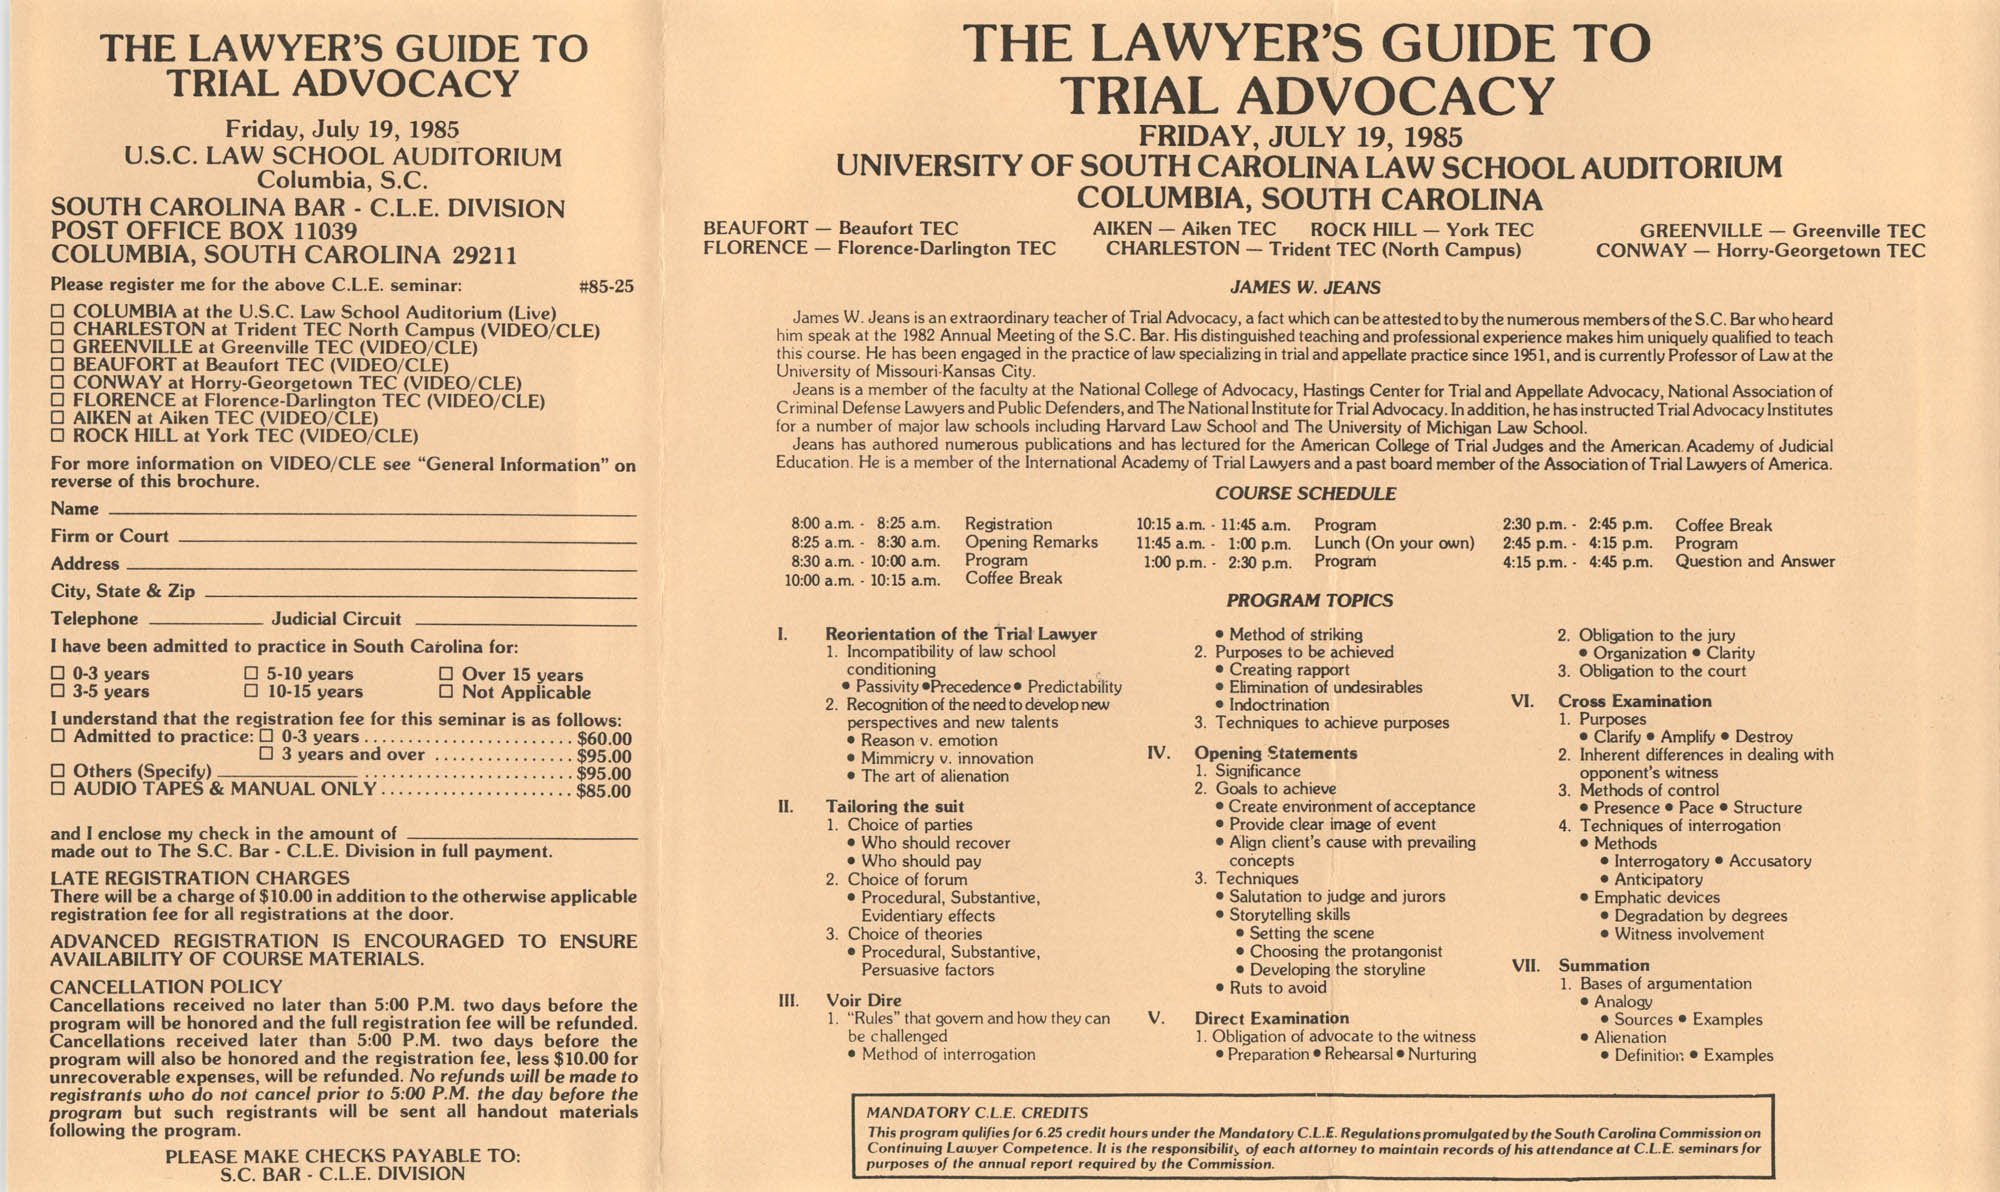 A Lawyer's Guide to Trial Advocacy, Video/CLE Seminar Pamphlet, July 19, 1985